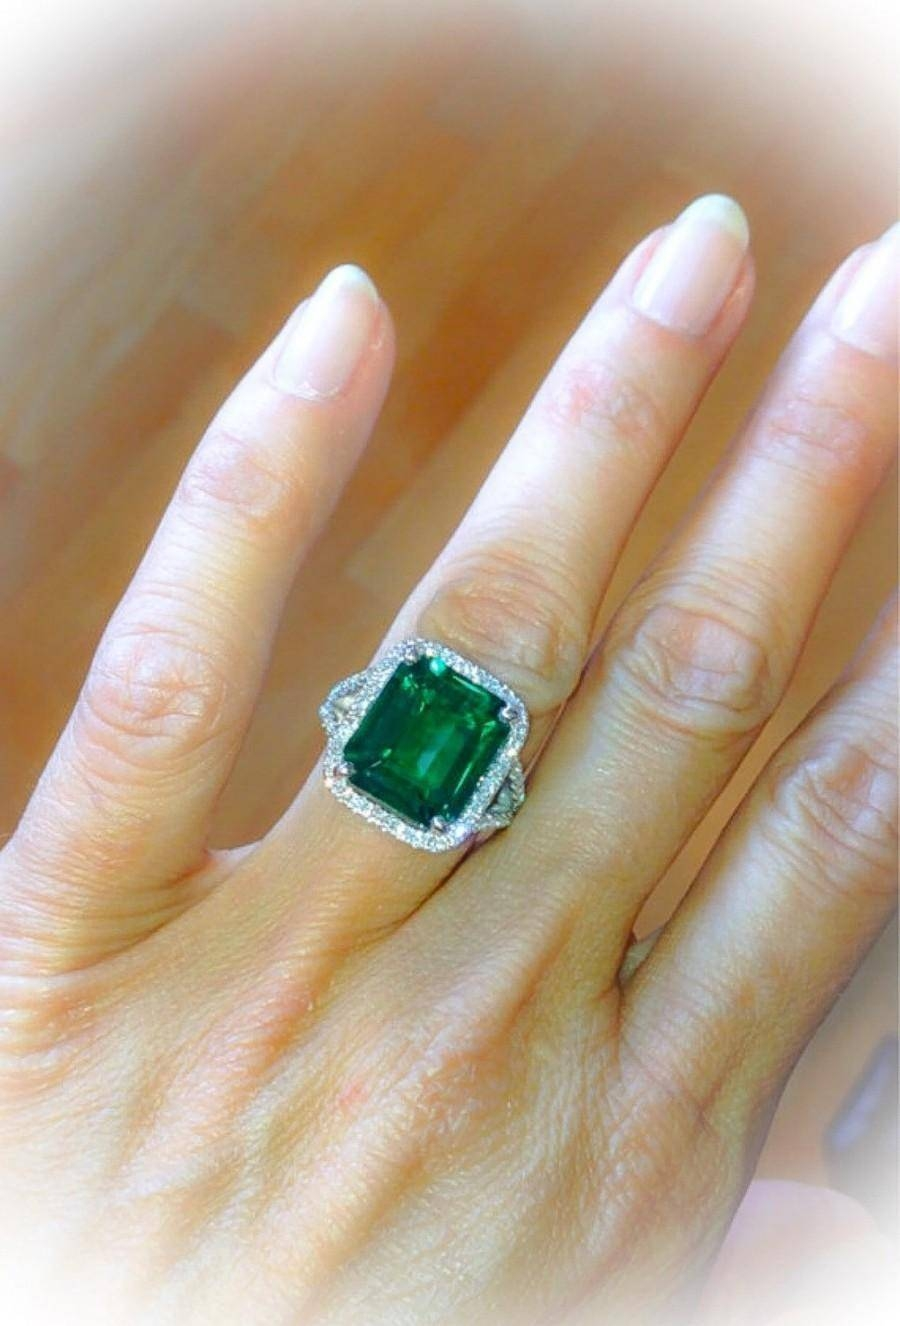 Emerald Engagement Ring Split Shank 18k White Gold 13x11mm 9ct With Regard To Most Up To Date Emerald Anniversary Rings (View 11 of 25)